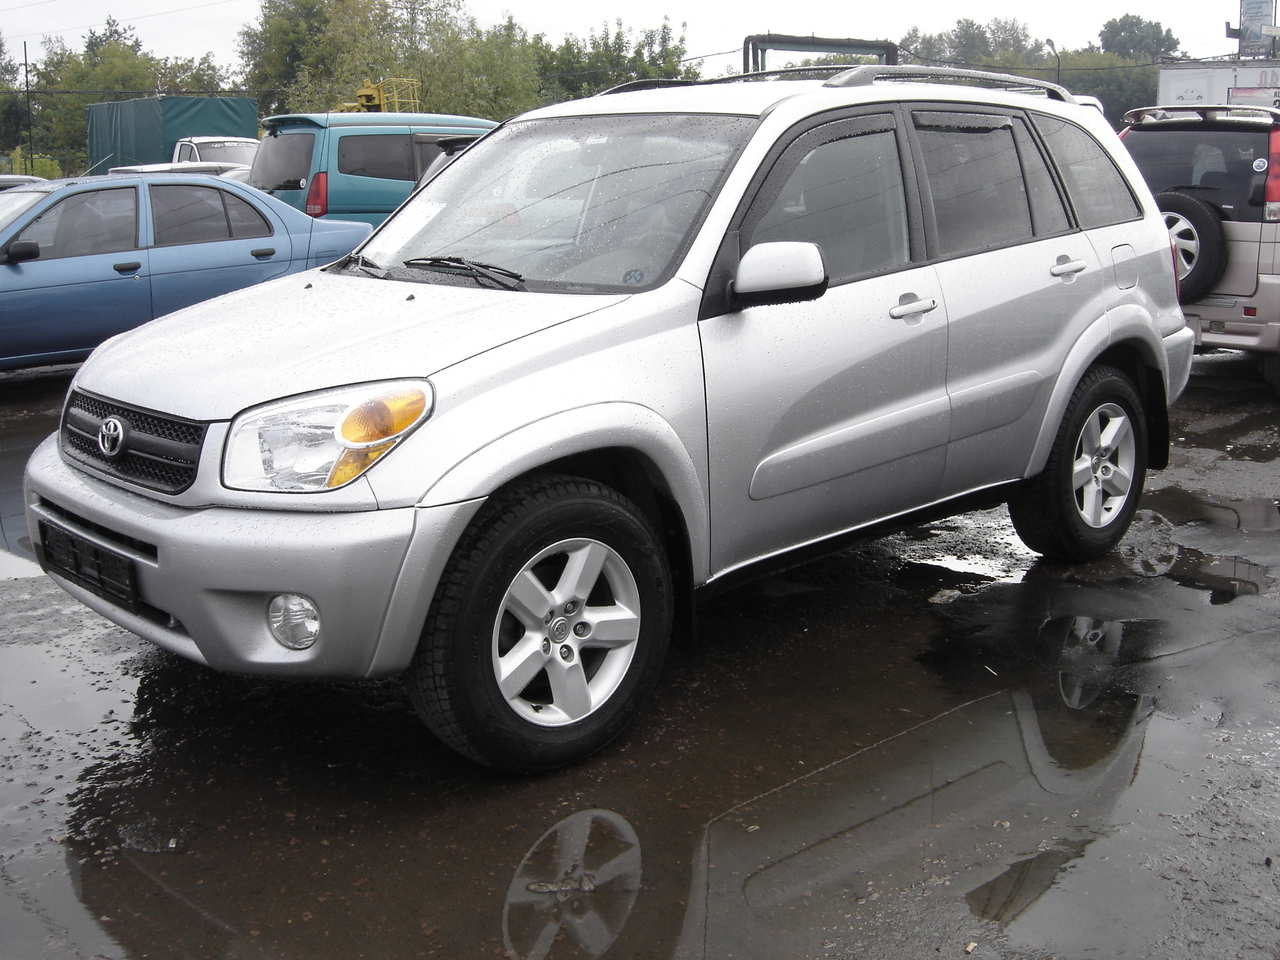 Toyota RAV4 2004 photo - 3